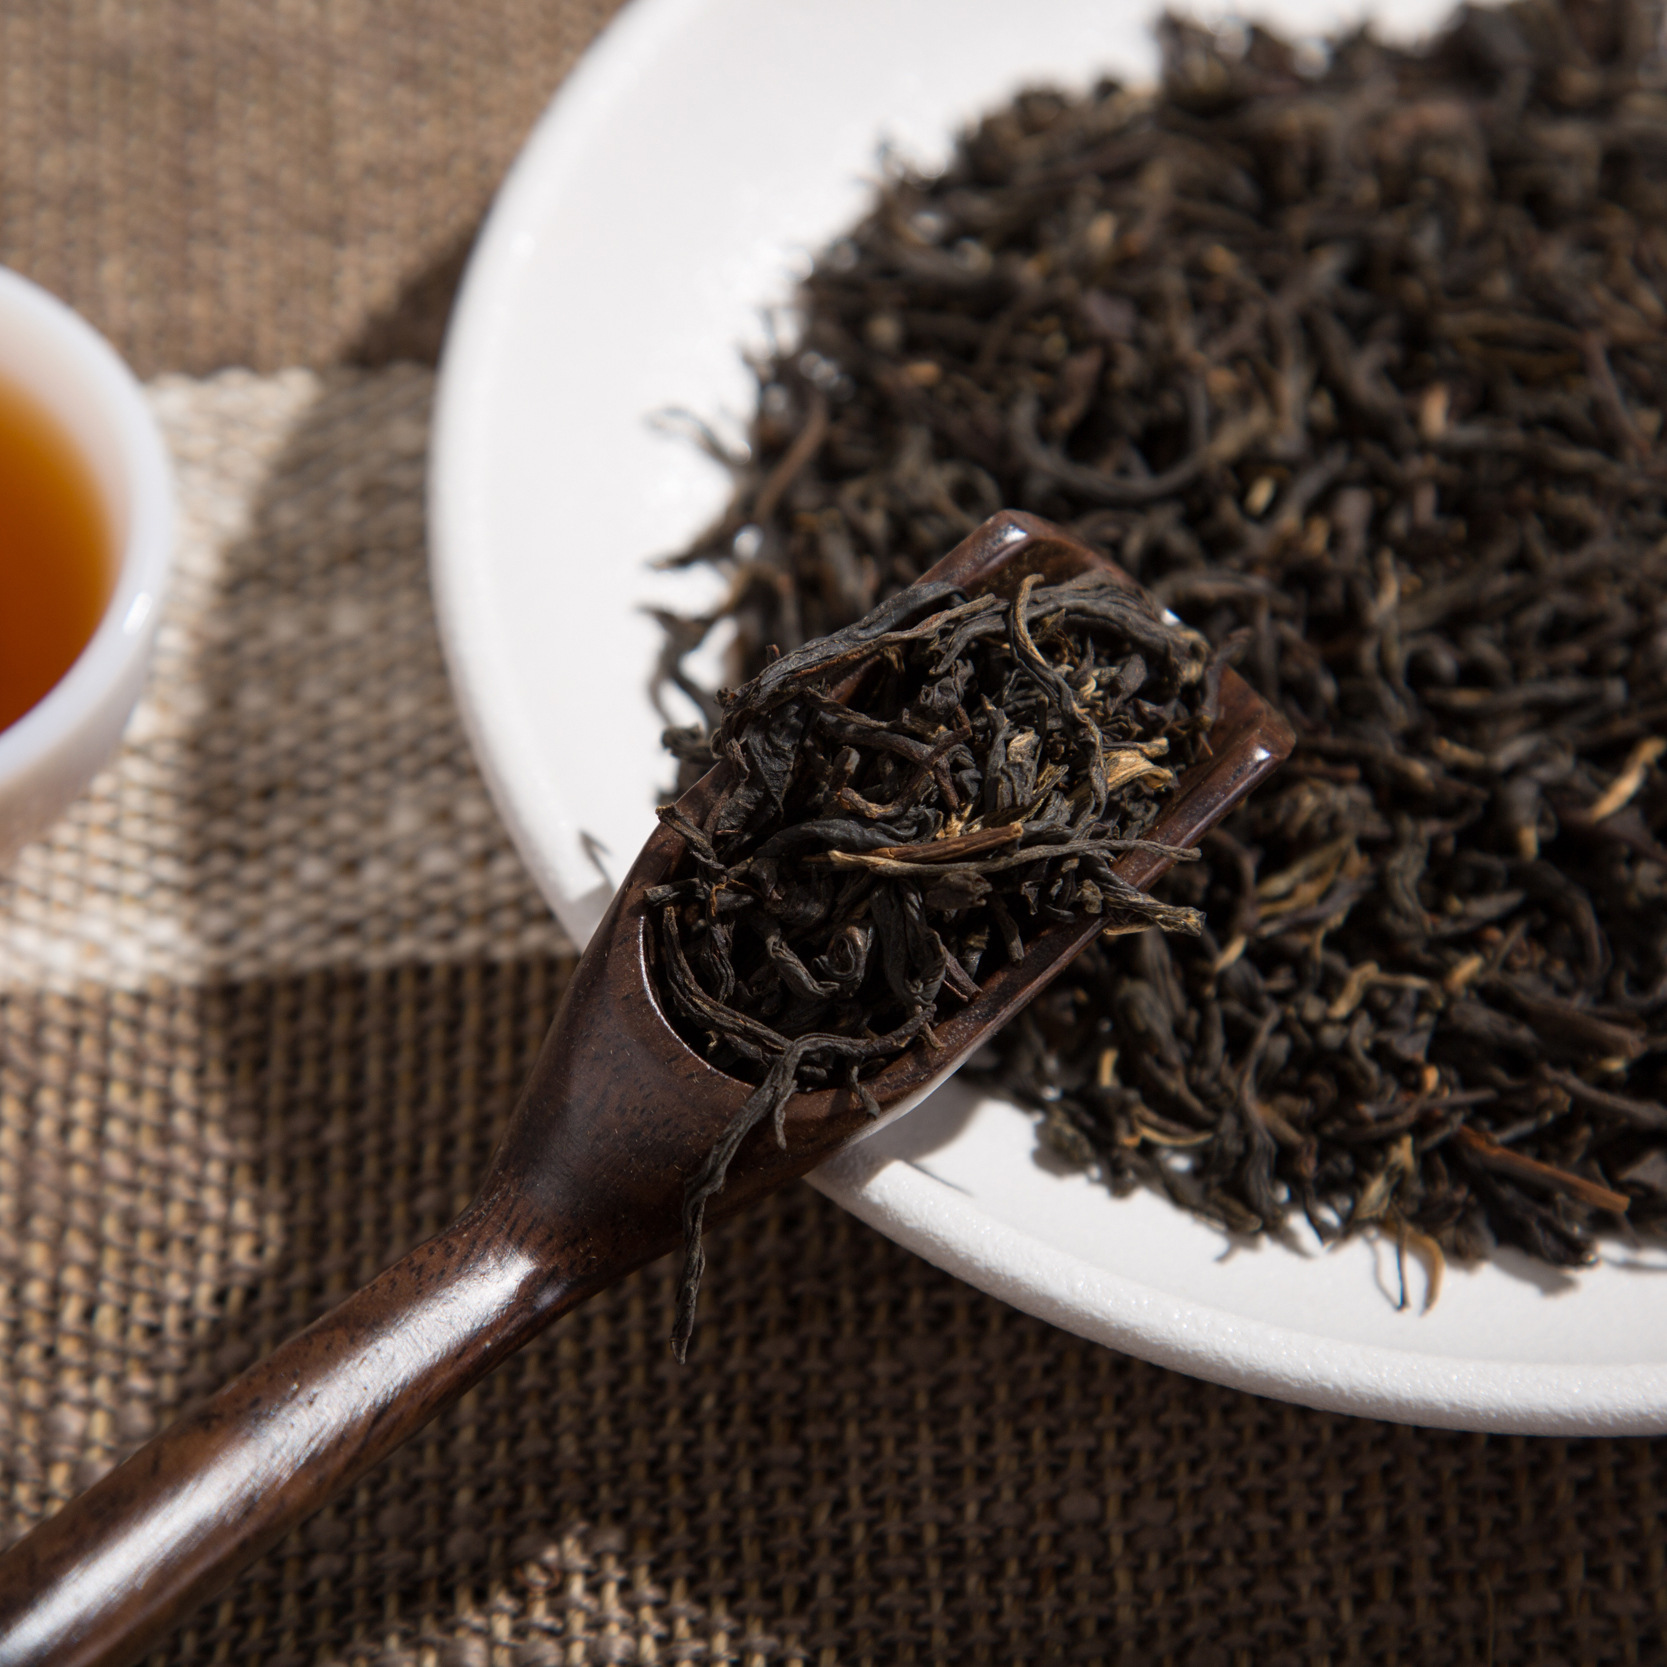 High quality yunnan ctc black tea with Tea bags for Milk tea price - 4uTea | 4uTea.com